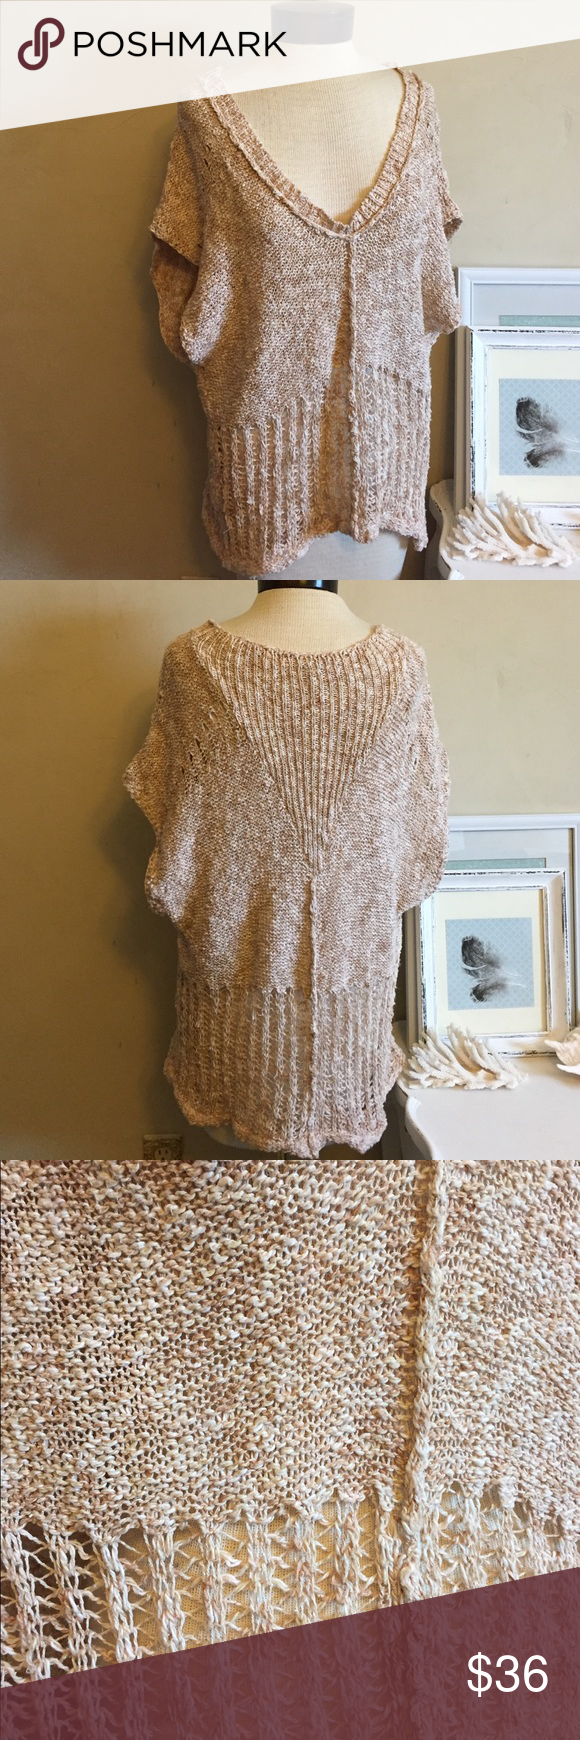 FP Shaggy Sweater Sleeveless Free People sweater. Great for layering. It is labeled Small but will fit medium too as it meant to fit very loose. 95% cotton, 5% polyester. It has some minimal piling but it blends with the texture and color of the sweater. No other flaws. Free People Sweaters V-Necks